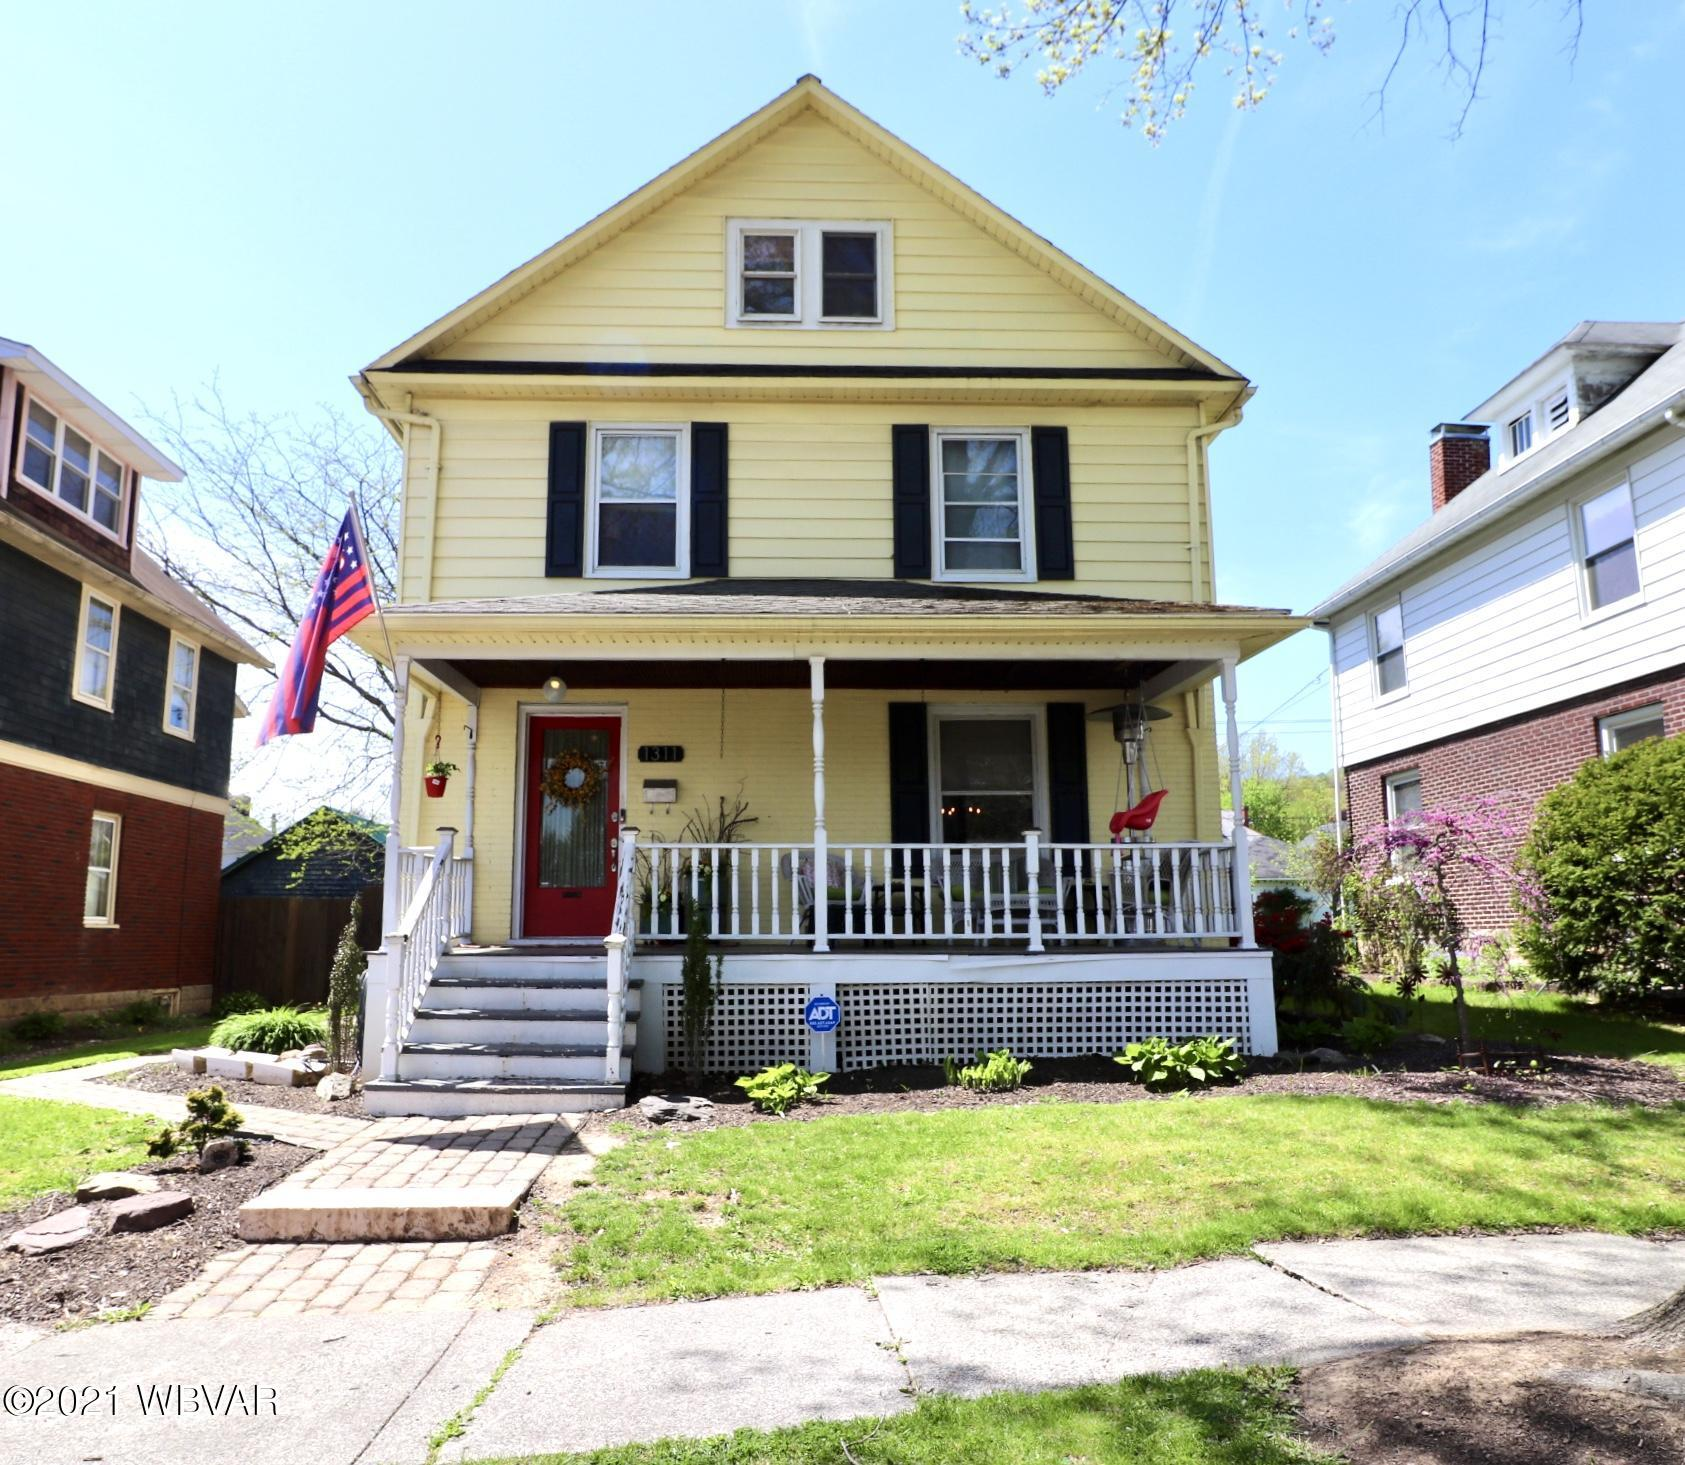 1311 CHERRY STREET, Williamsport, PA 17701, 5 Bedrooms Bedrooms, ,3 BathroomsBathrooms,Residential,For sale,CHERRY,WB-92440